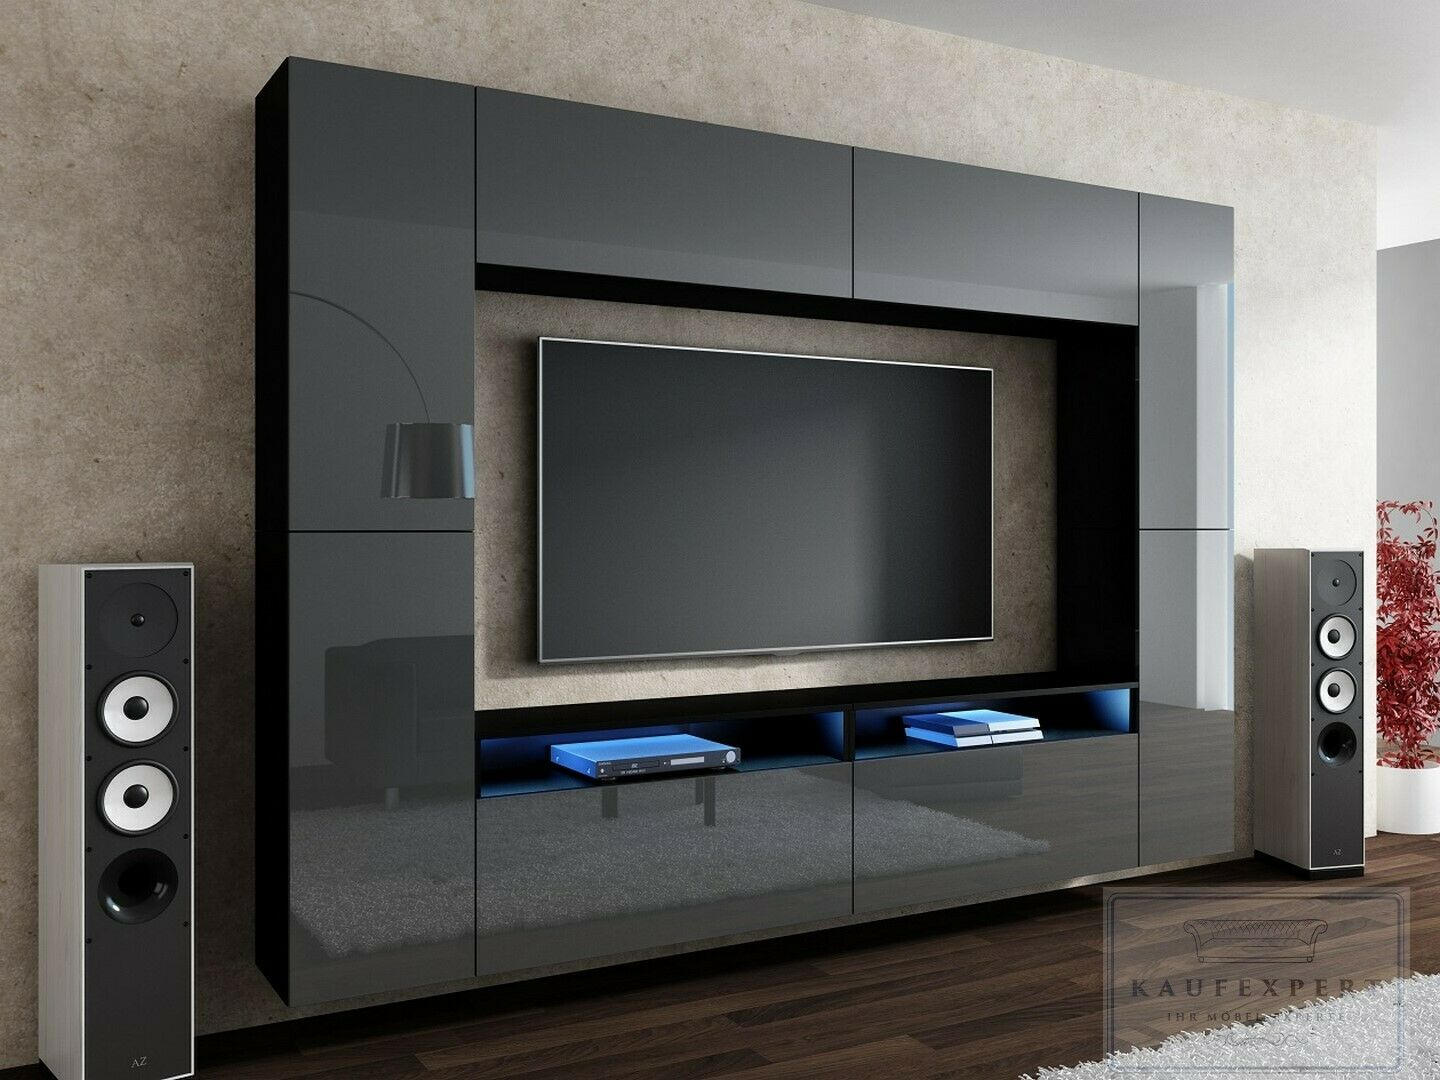 neuheit wohnwand cinema grau hochglanz schwarz mediawand. Black Bedroom Furniture Sets. Home Design Ideas